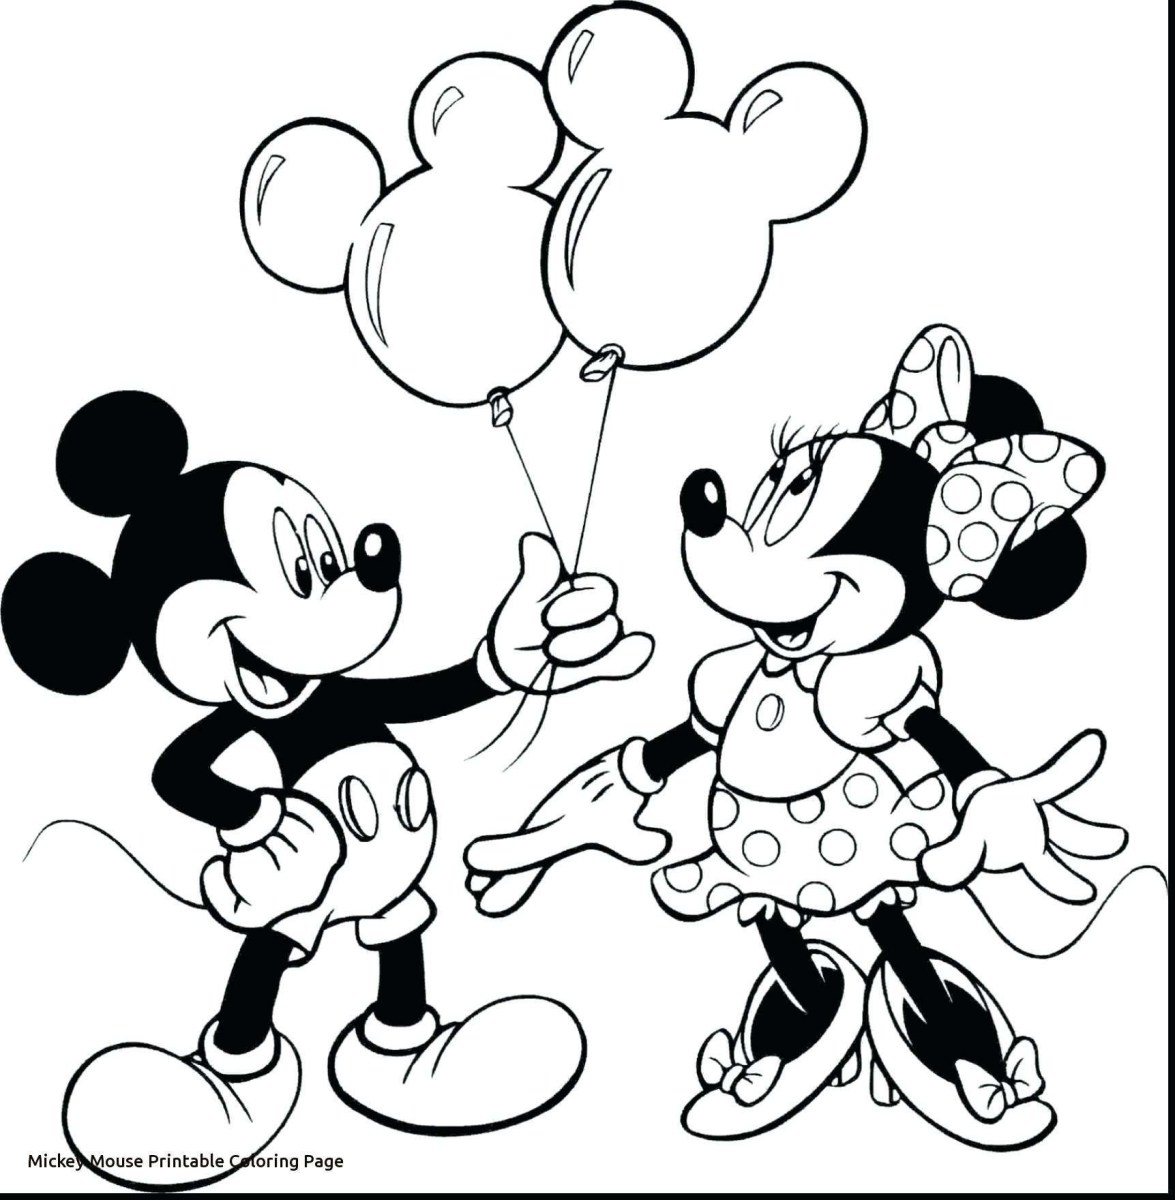 Mickey Mouse Coloring Page Mickey And Minnie Mouse Coloring ...